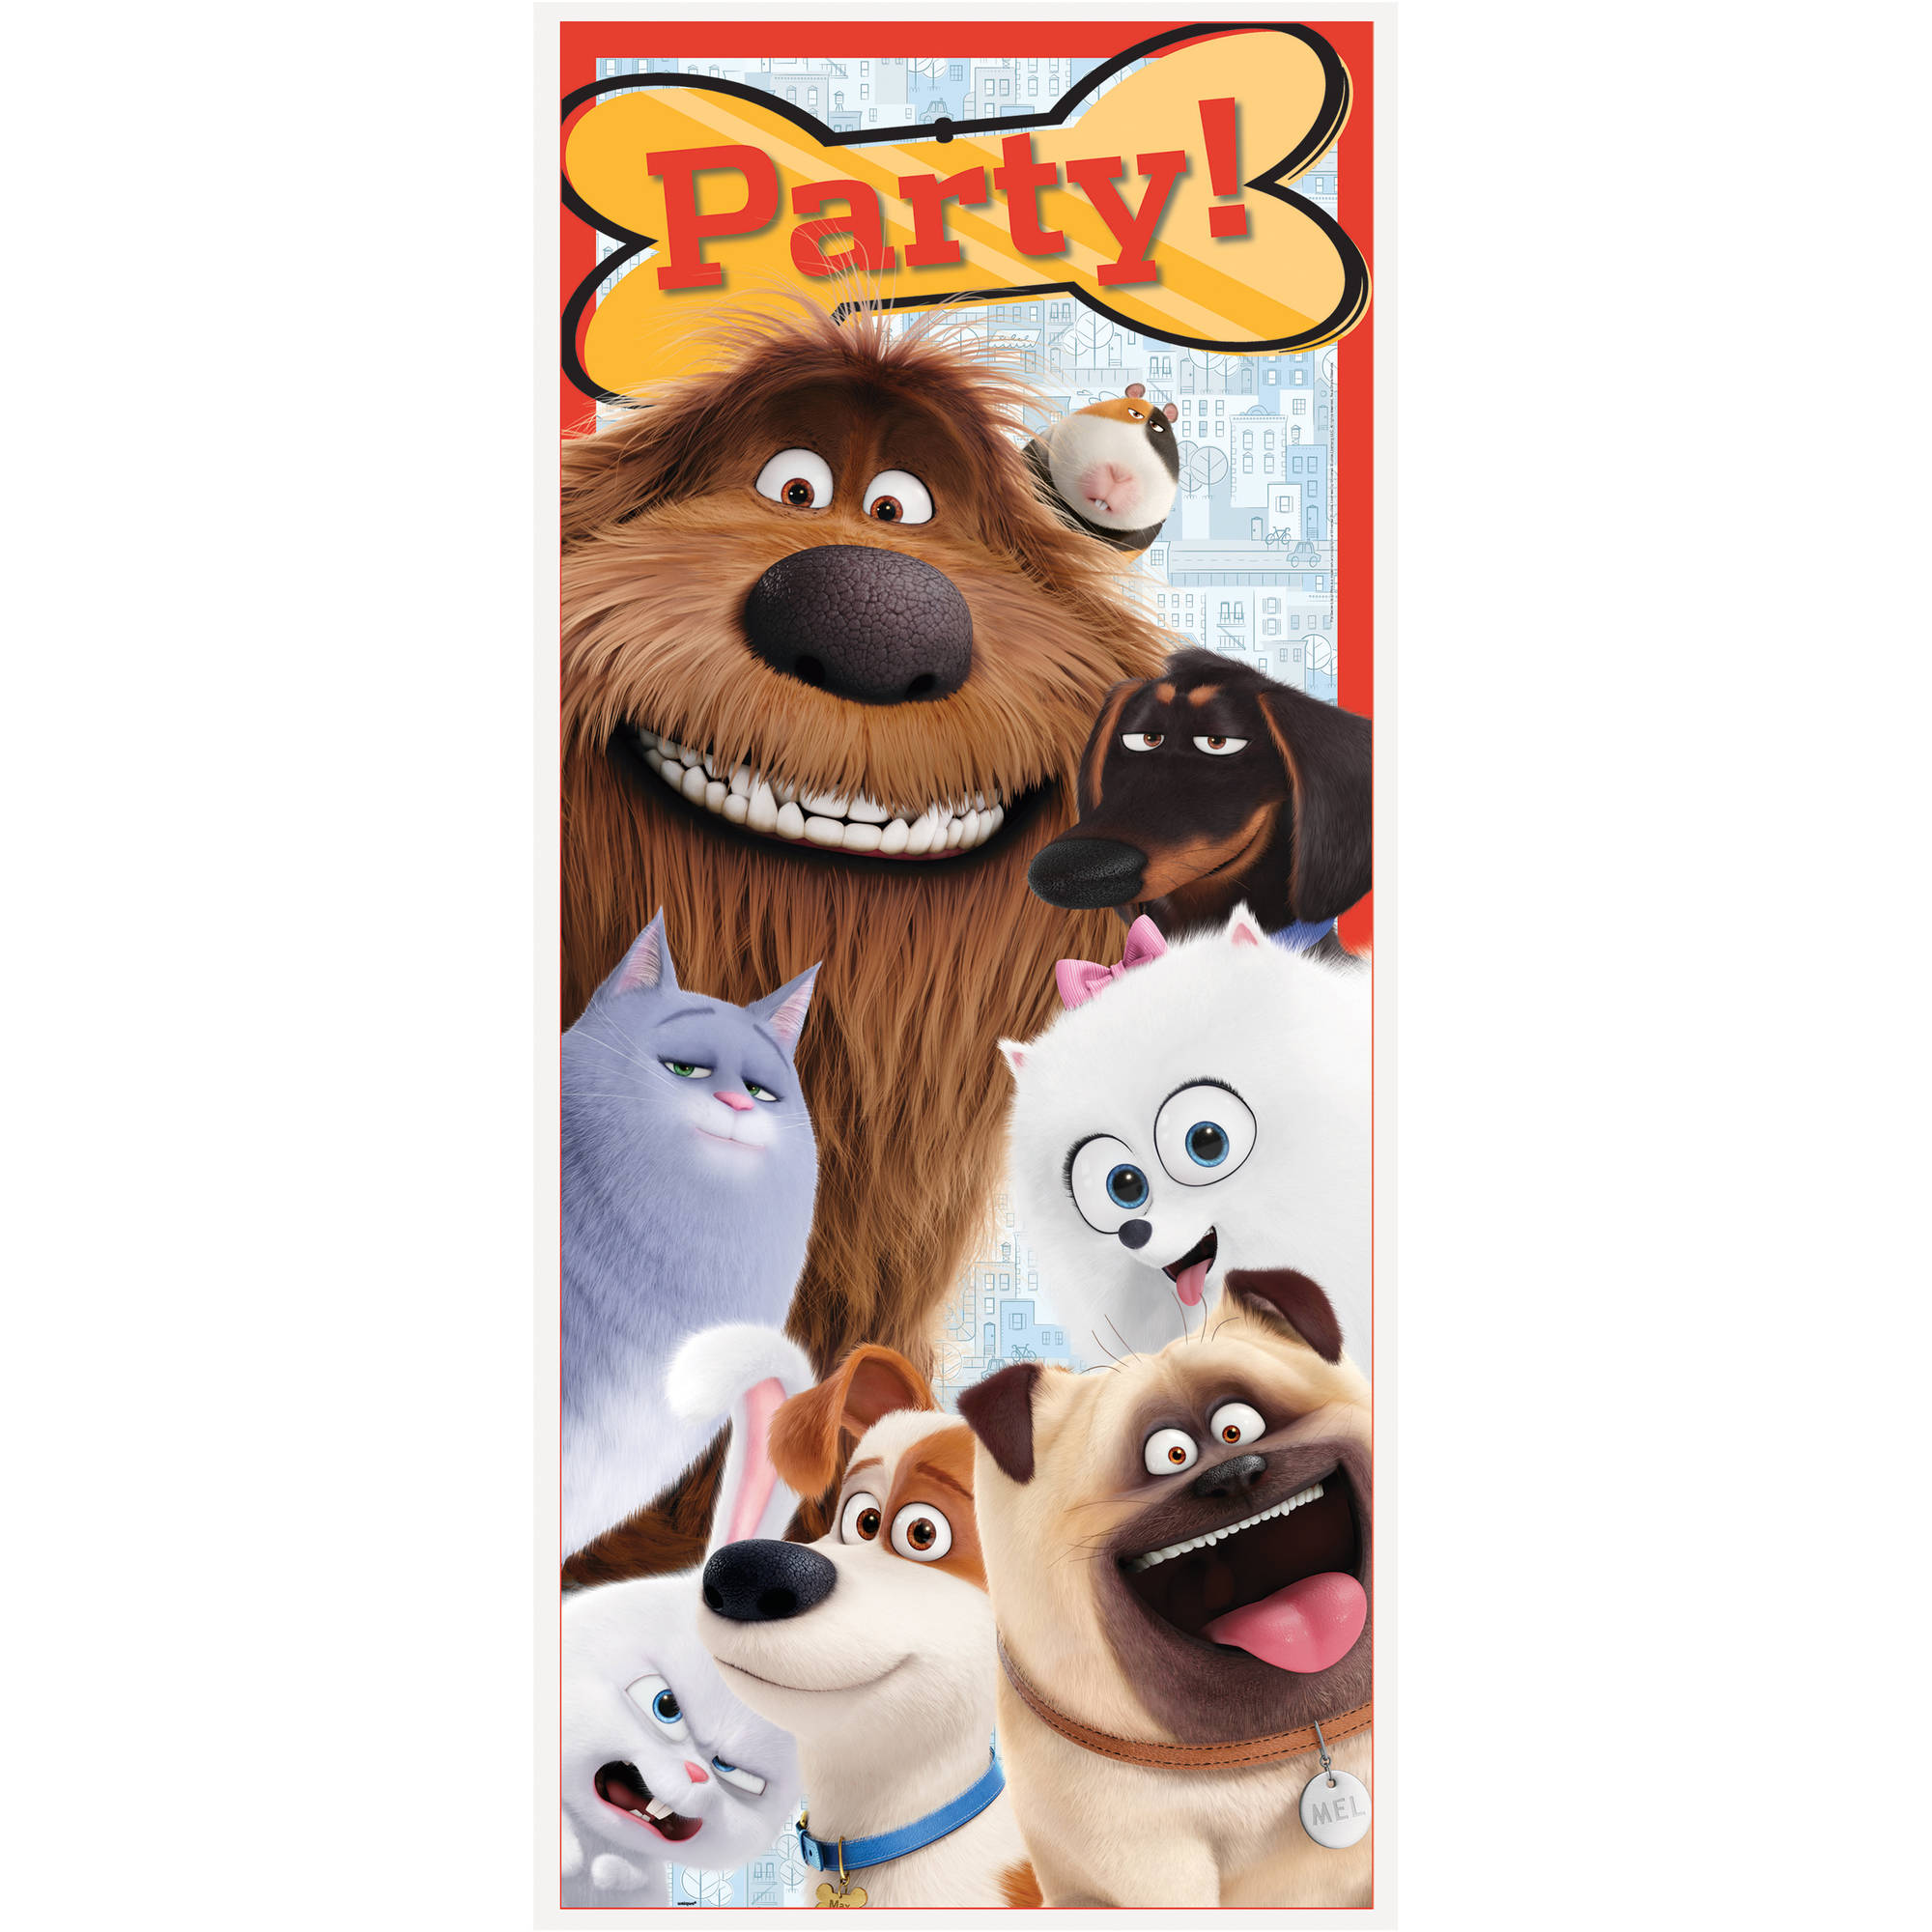 "Plastic The Secret Life of Pets Door Poster, 60"" x 27"""